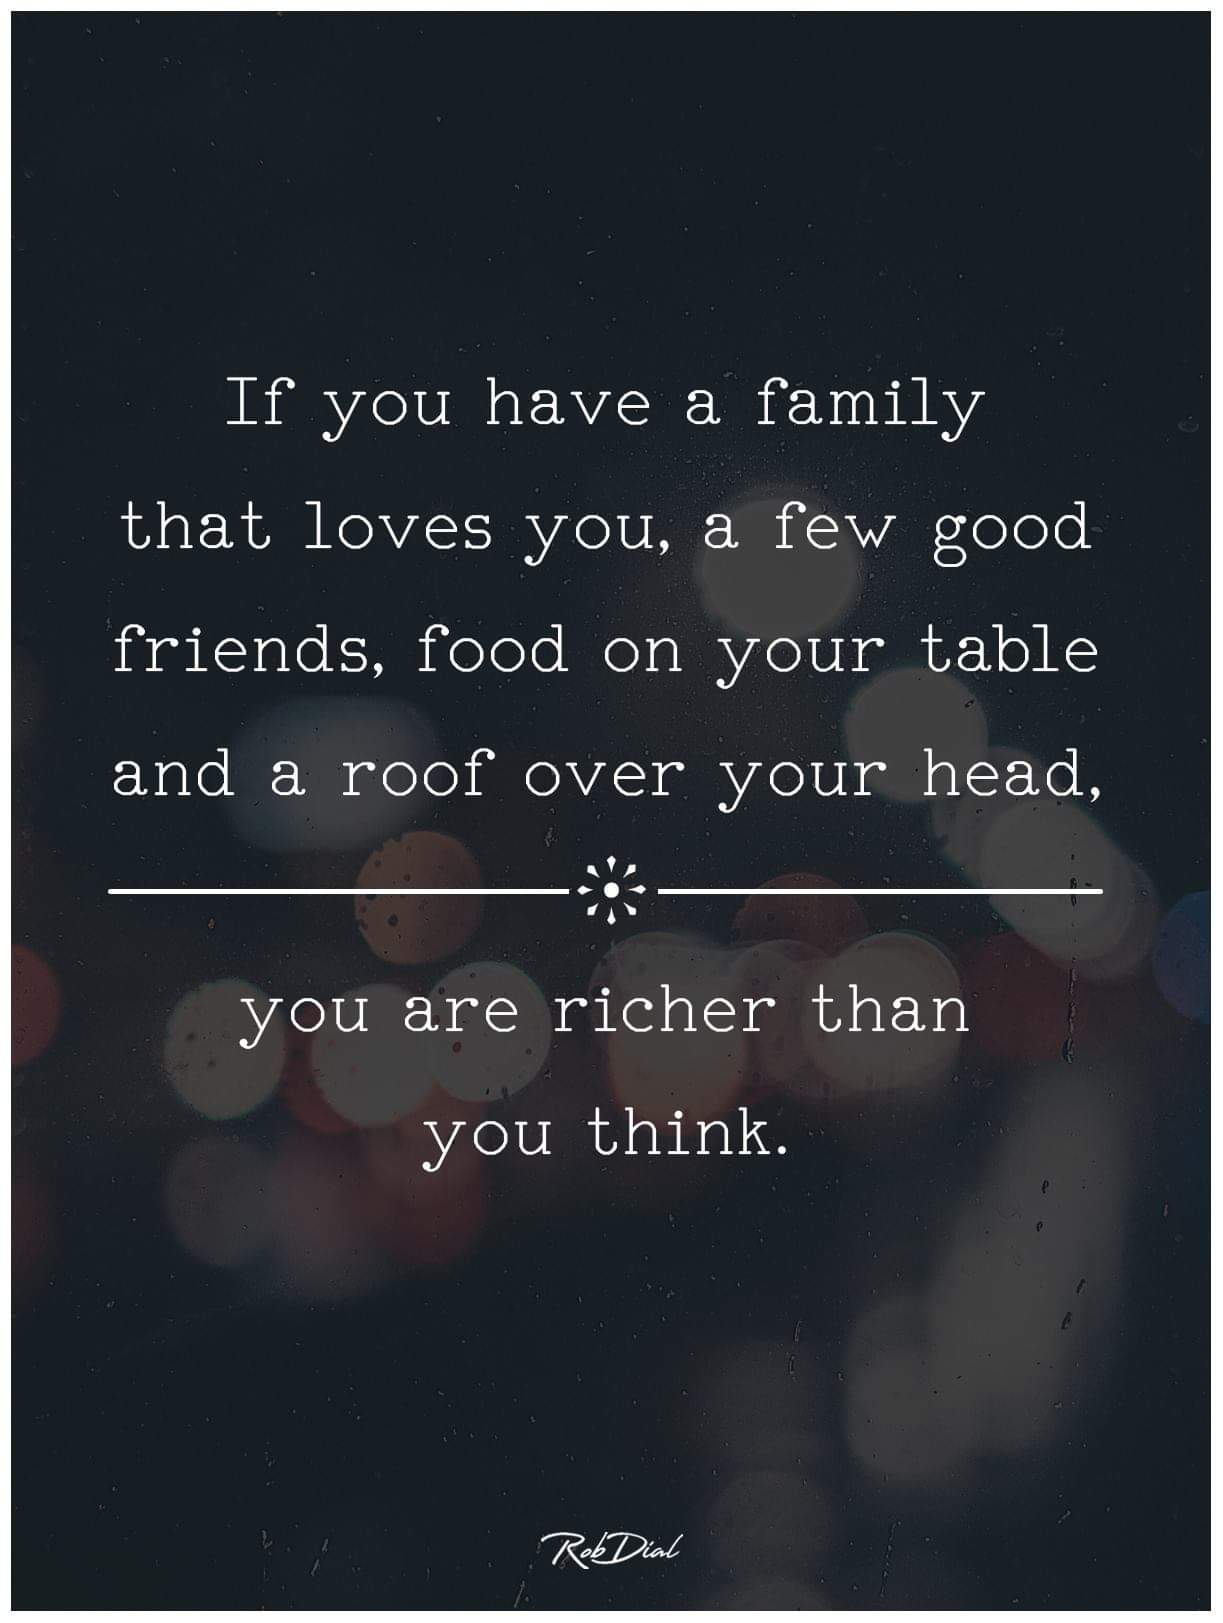 [Image] you are richer than you think